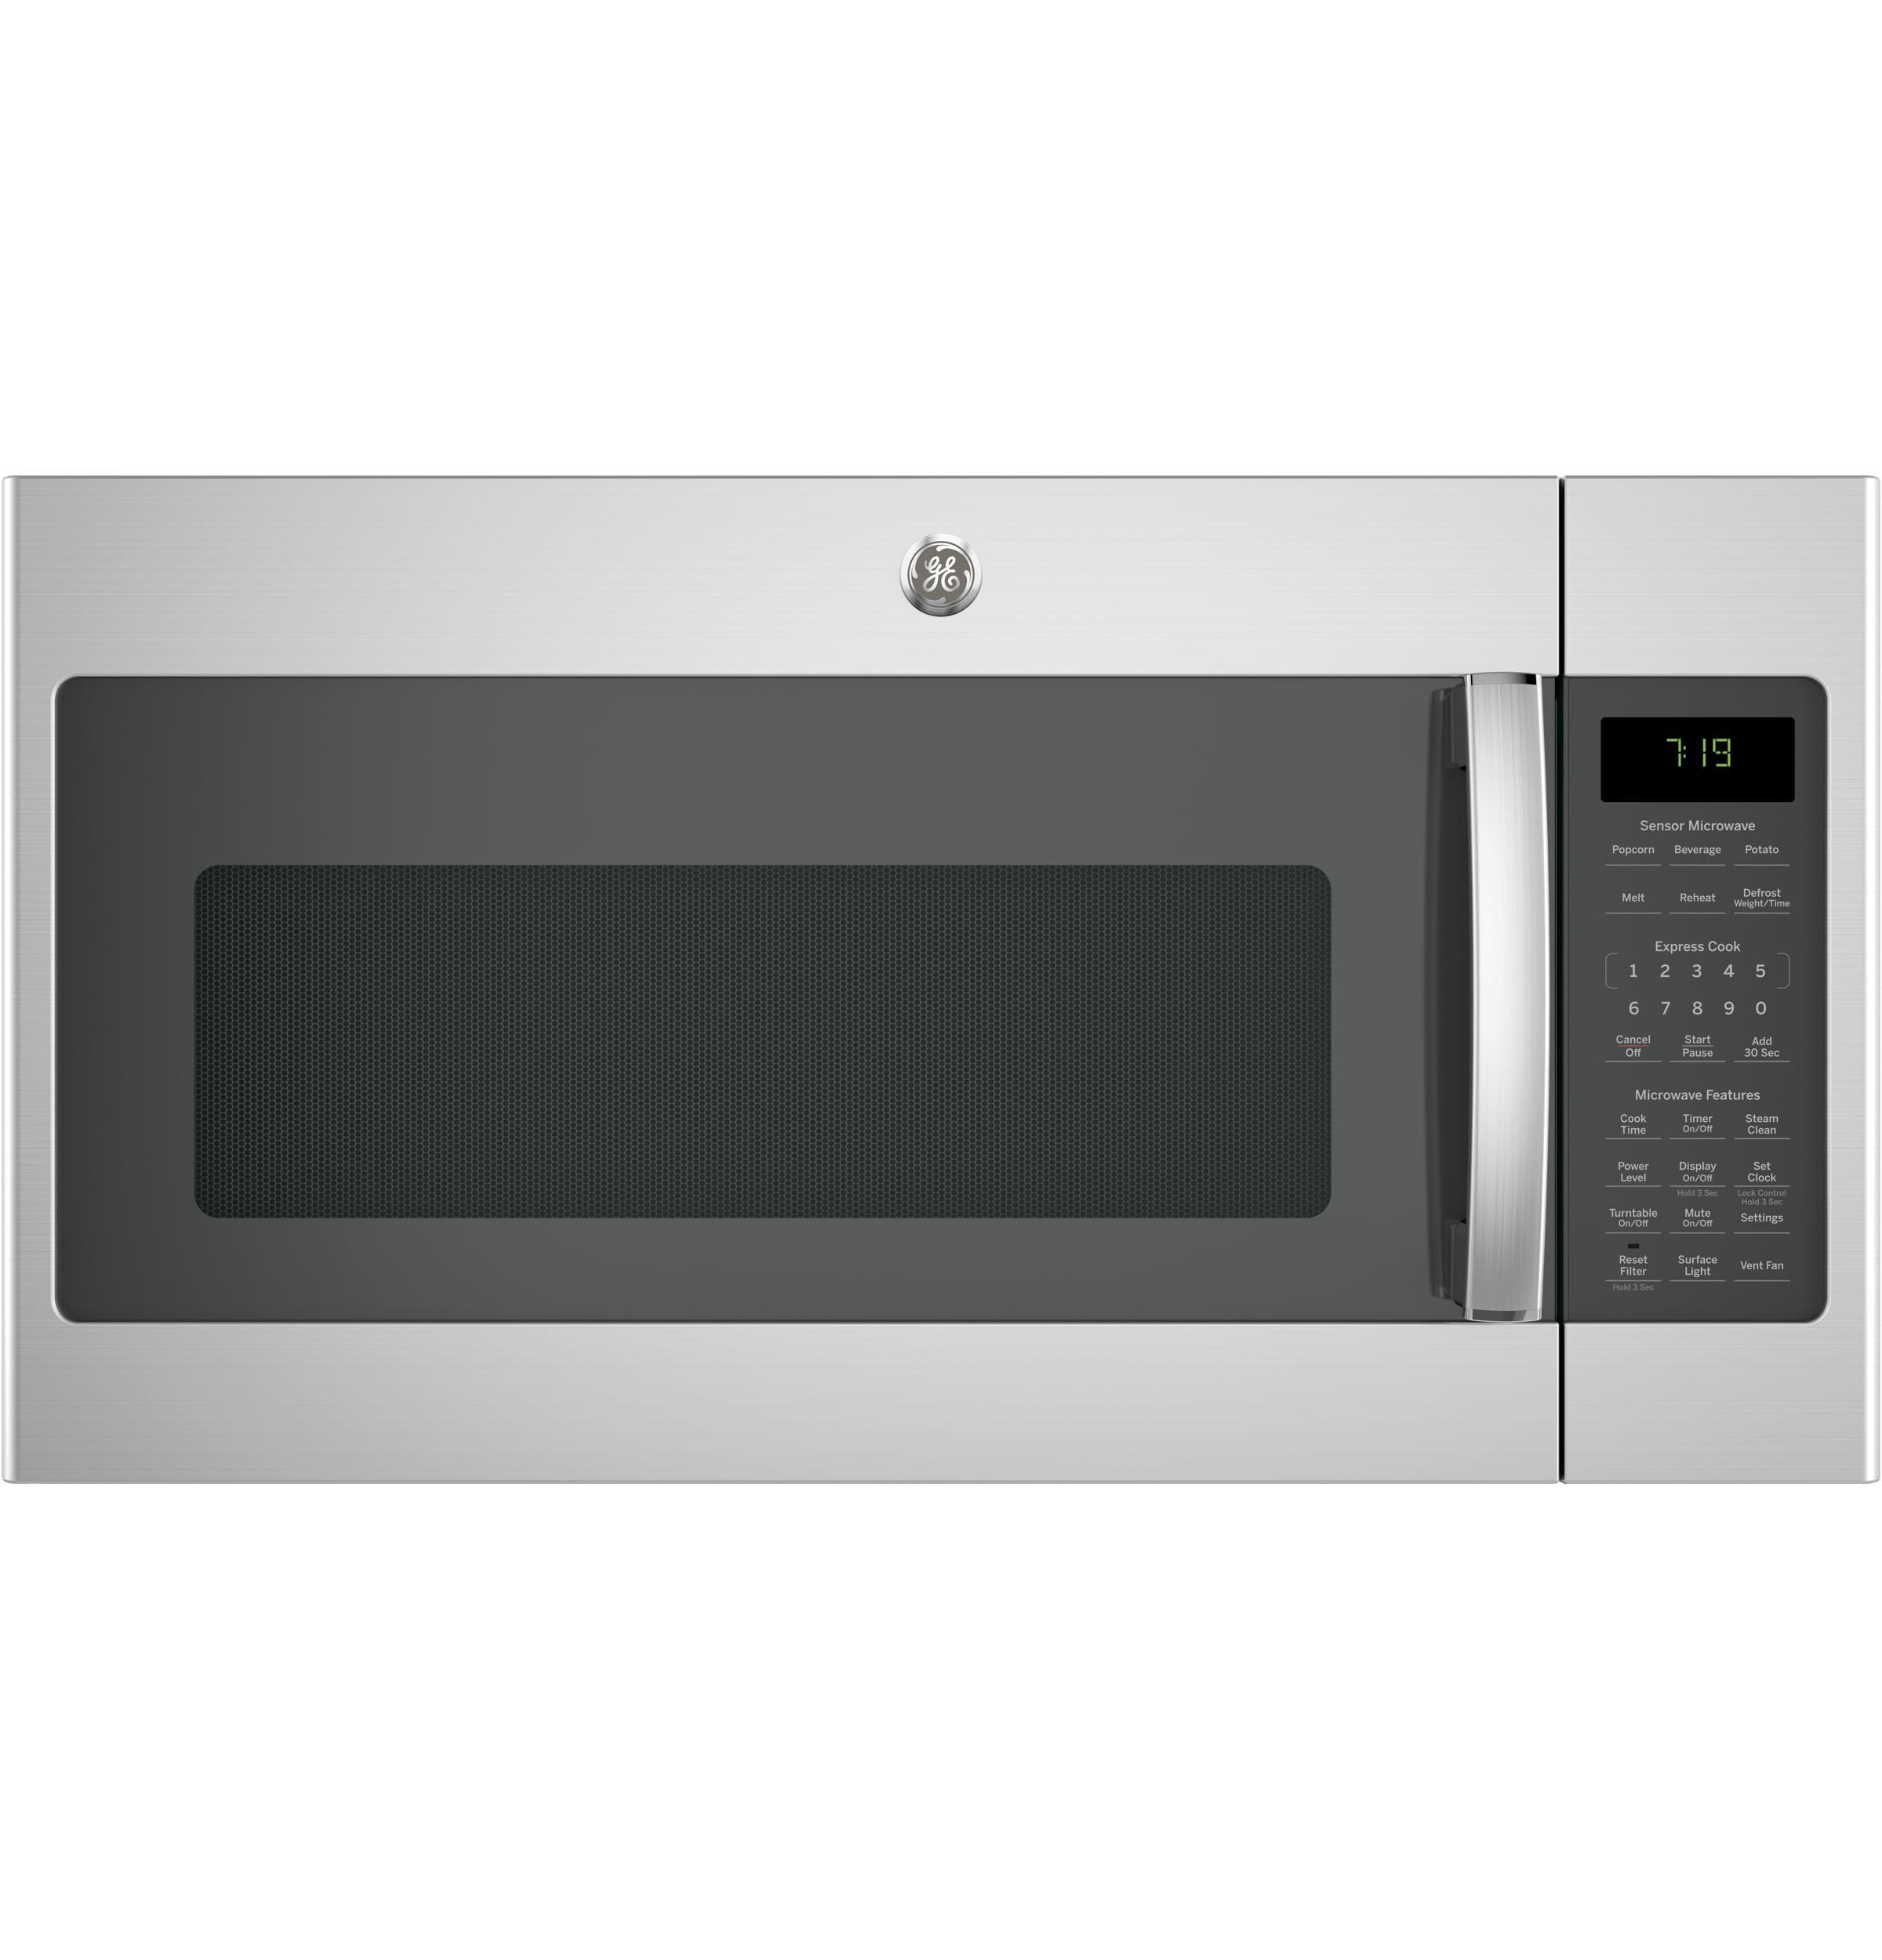 GE(R) 1.9 Cu. Ft. Over-the-Range Sensor Microwave Oven with Recirculating Venting